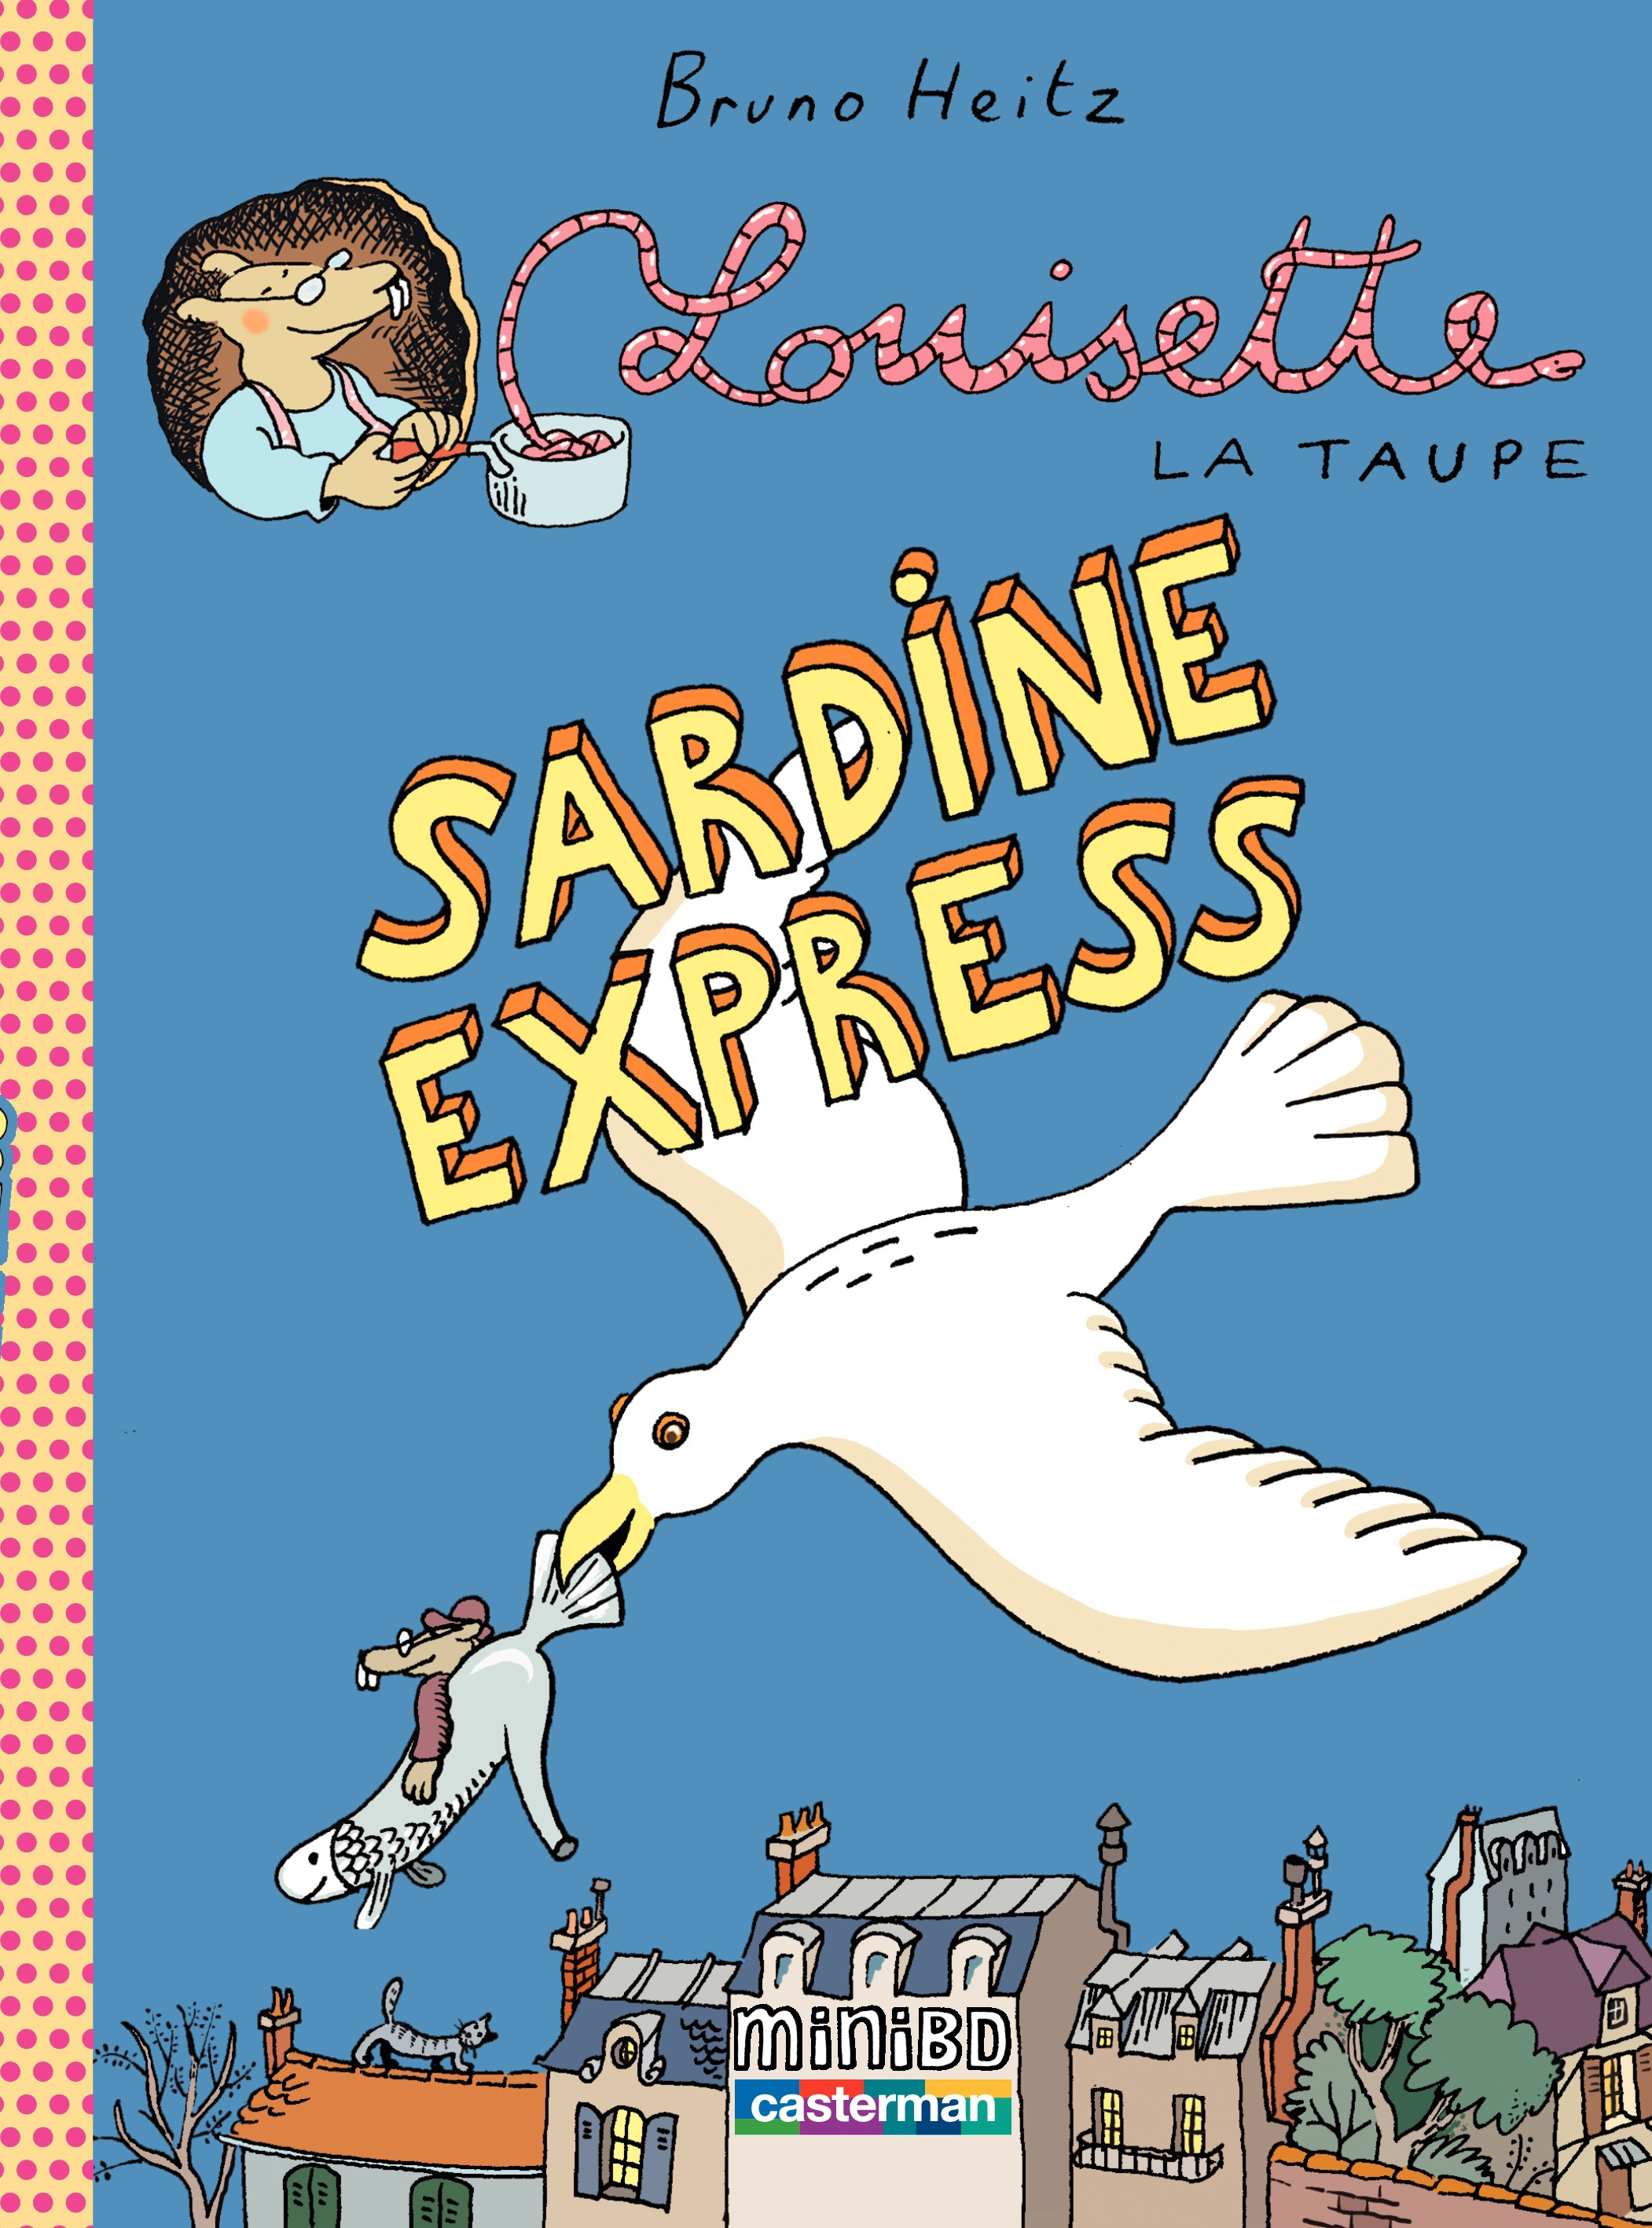 Louisette la taupe (Tome 2) - Sardine express